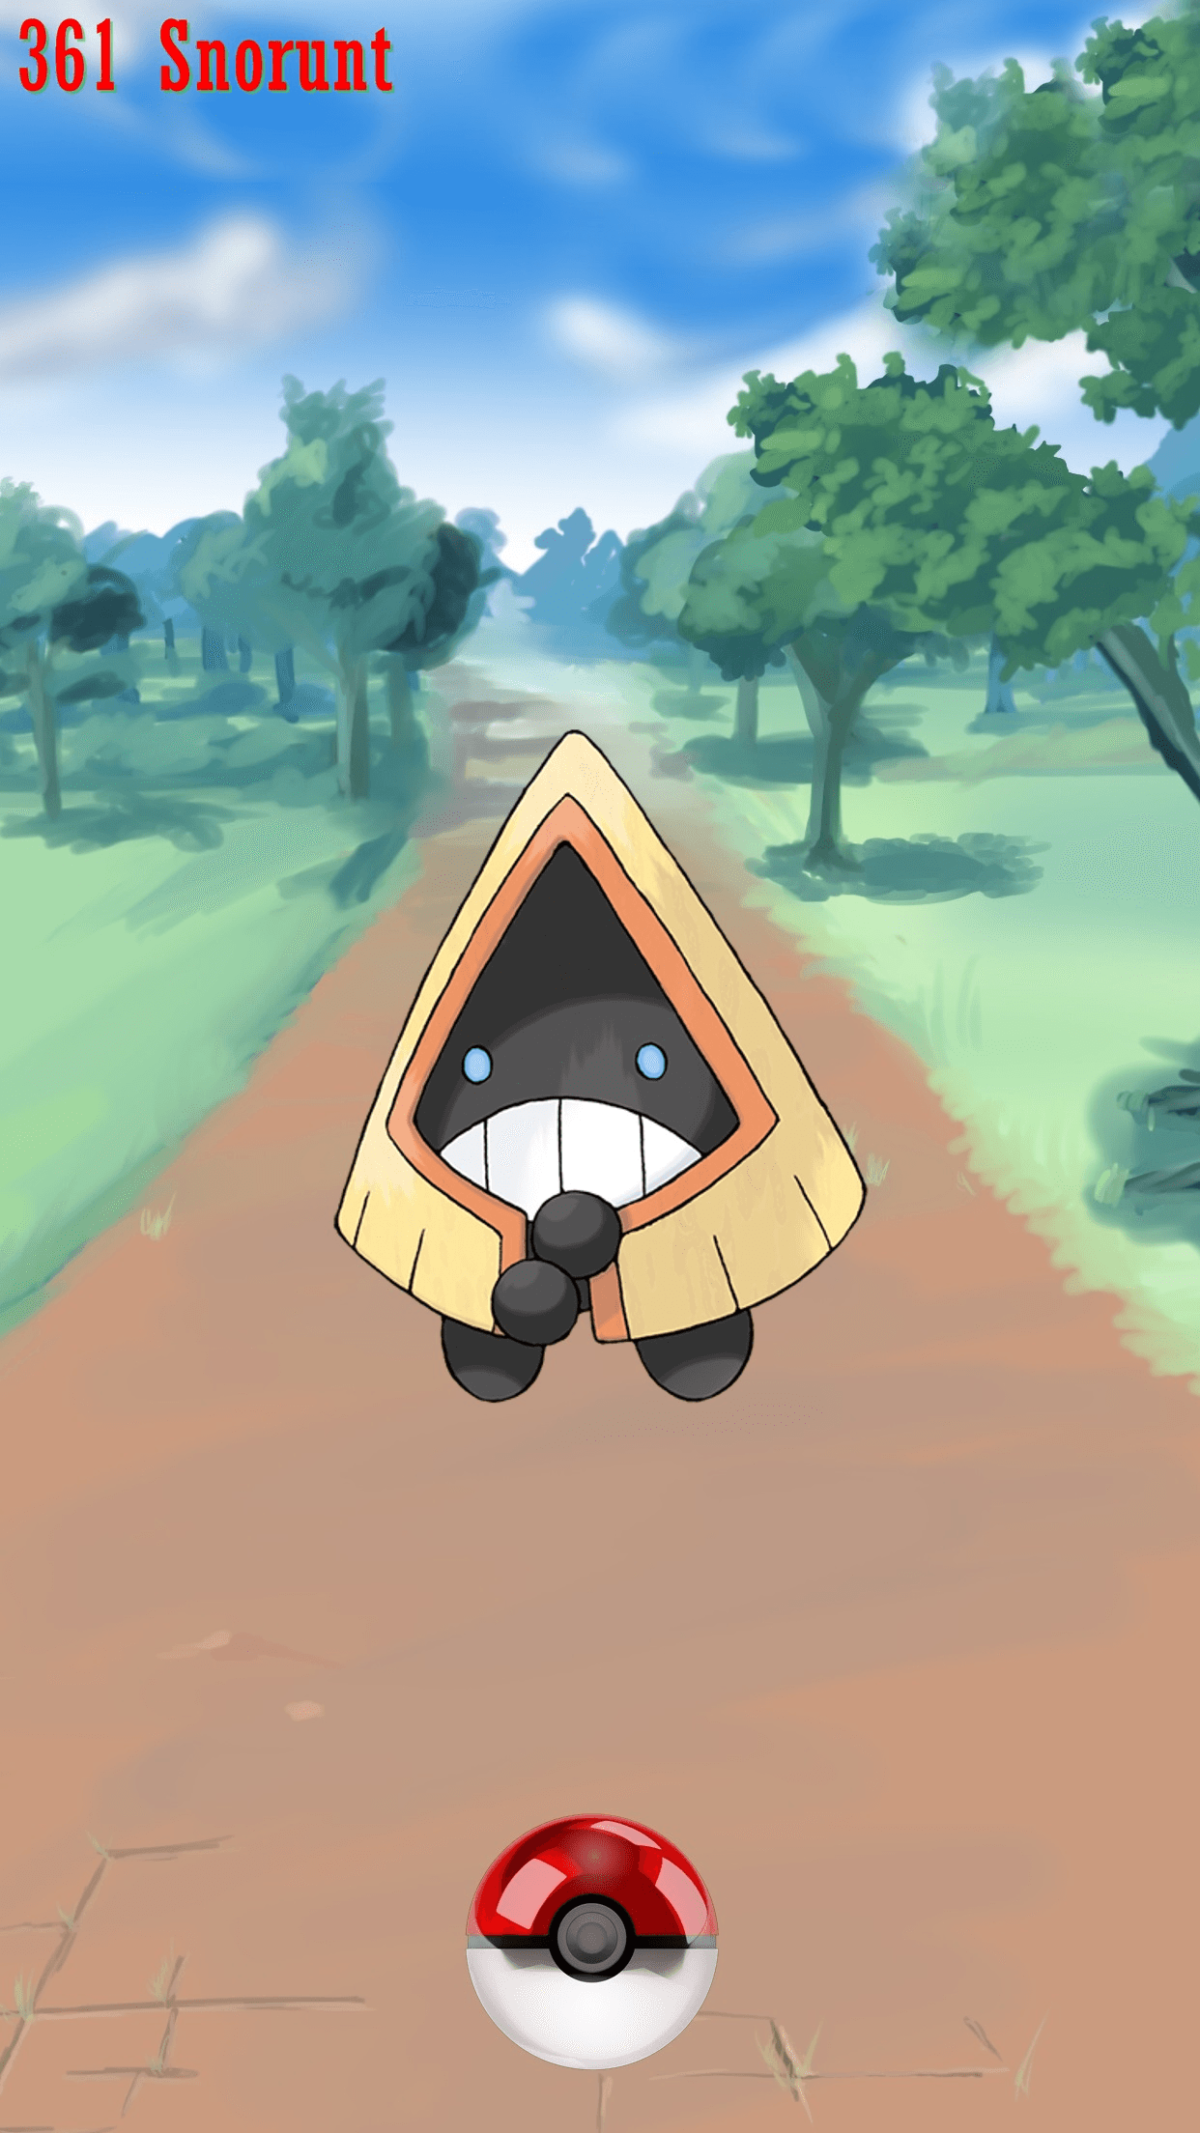 361 Street Pokeball Snorunt | Wallpaper